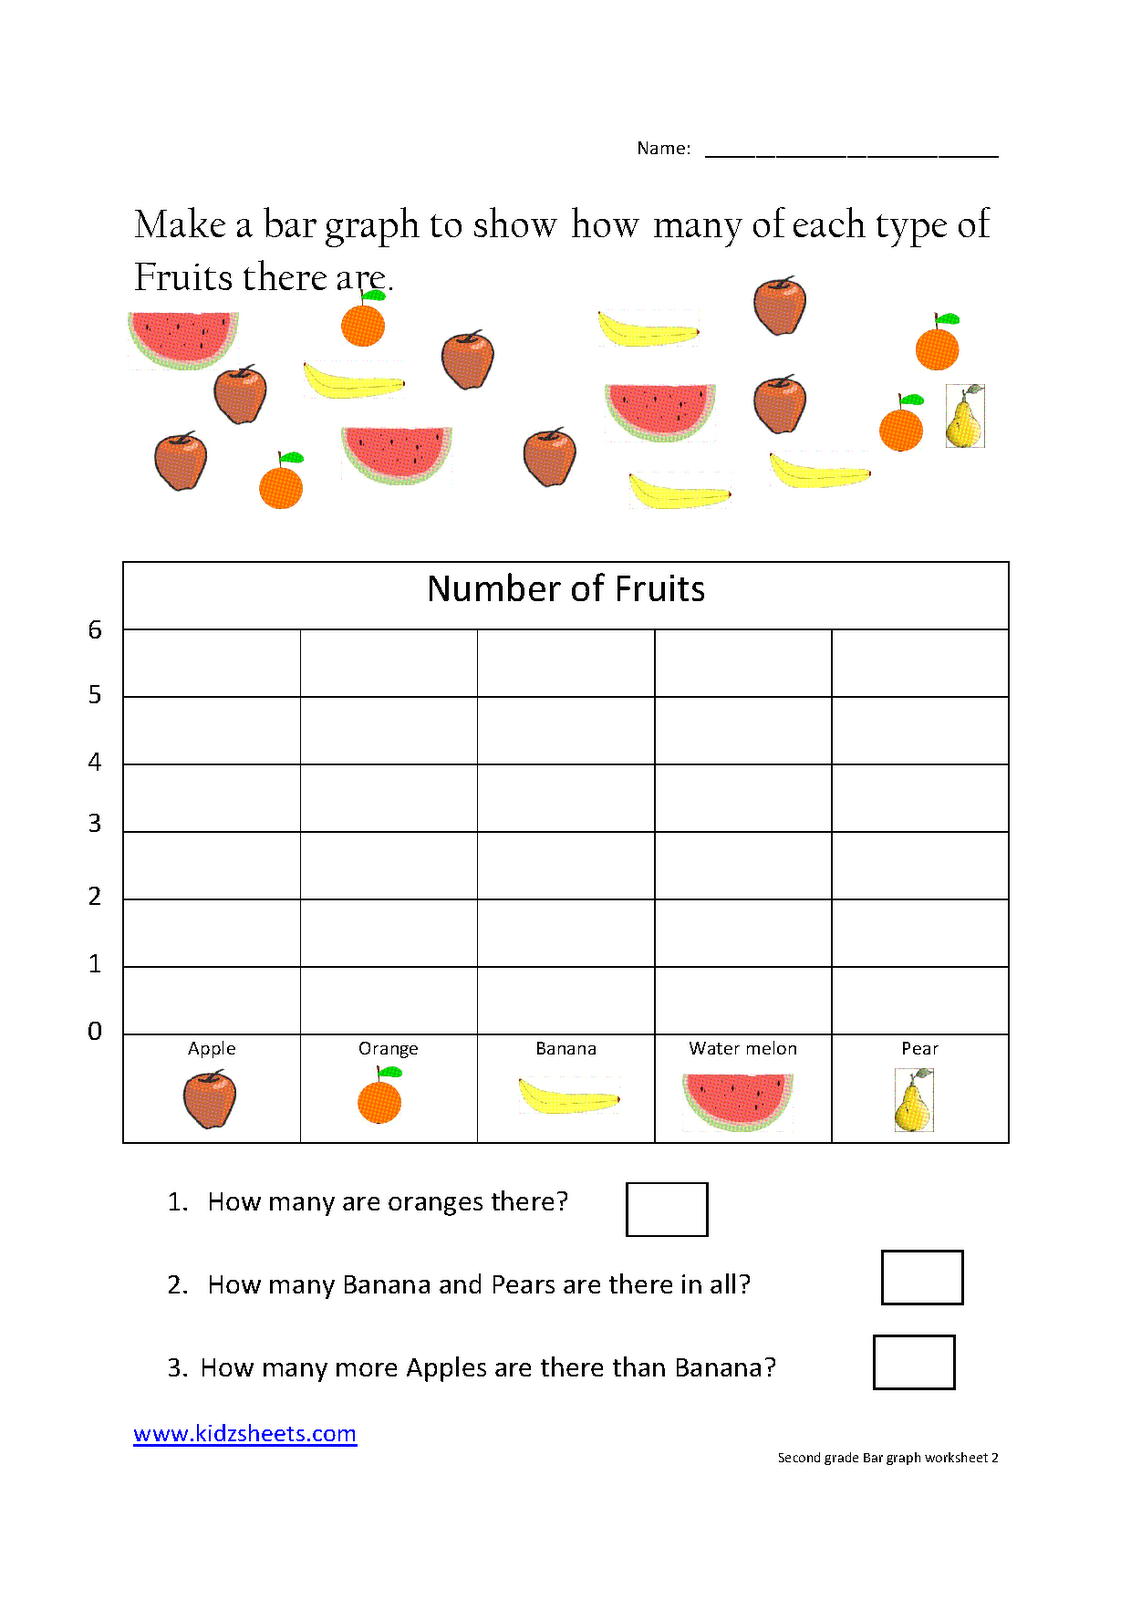 Kidz Worksheets Second Grade Bar Graph Worksheet2 – Graphing Worksheet Kindergarten